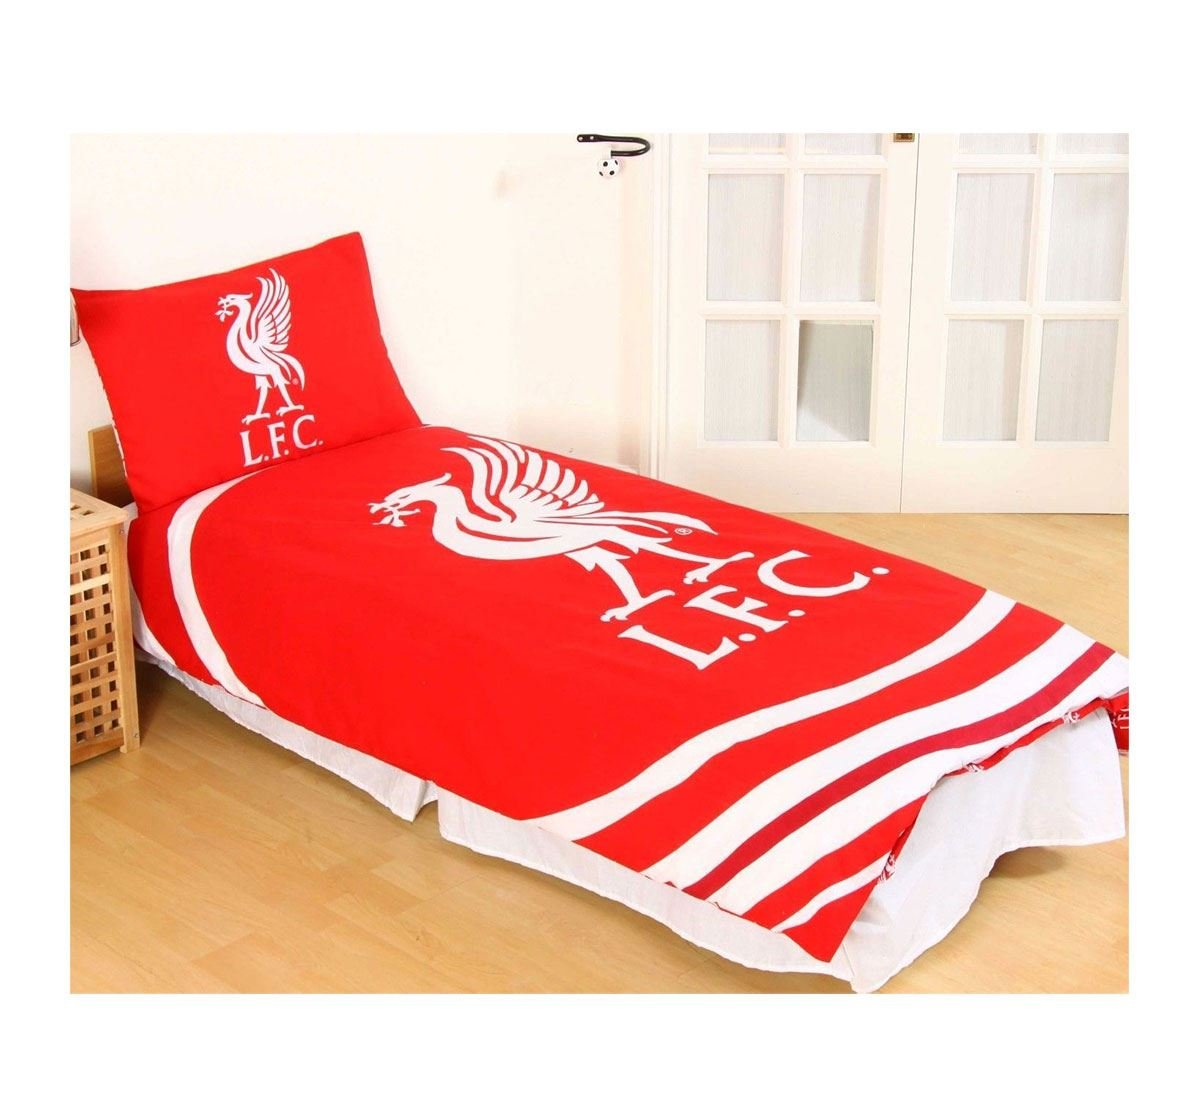 Boys Liverpool FC Pulse Single Bedding Childrens Quilt Cover Pillow Case Set Red MA ONLINE